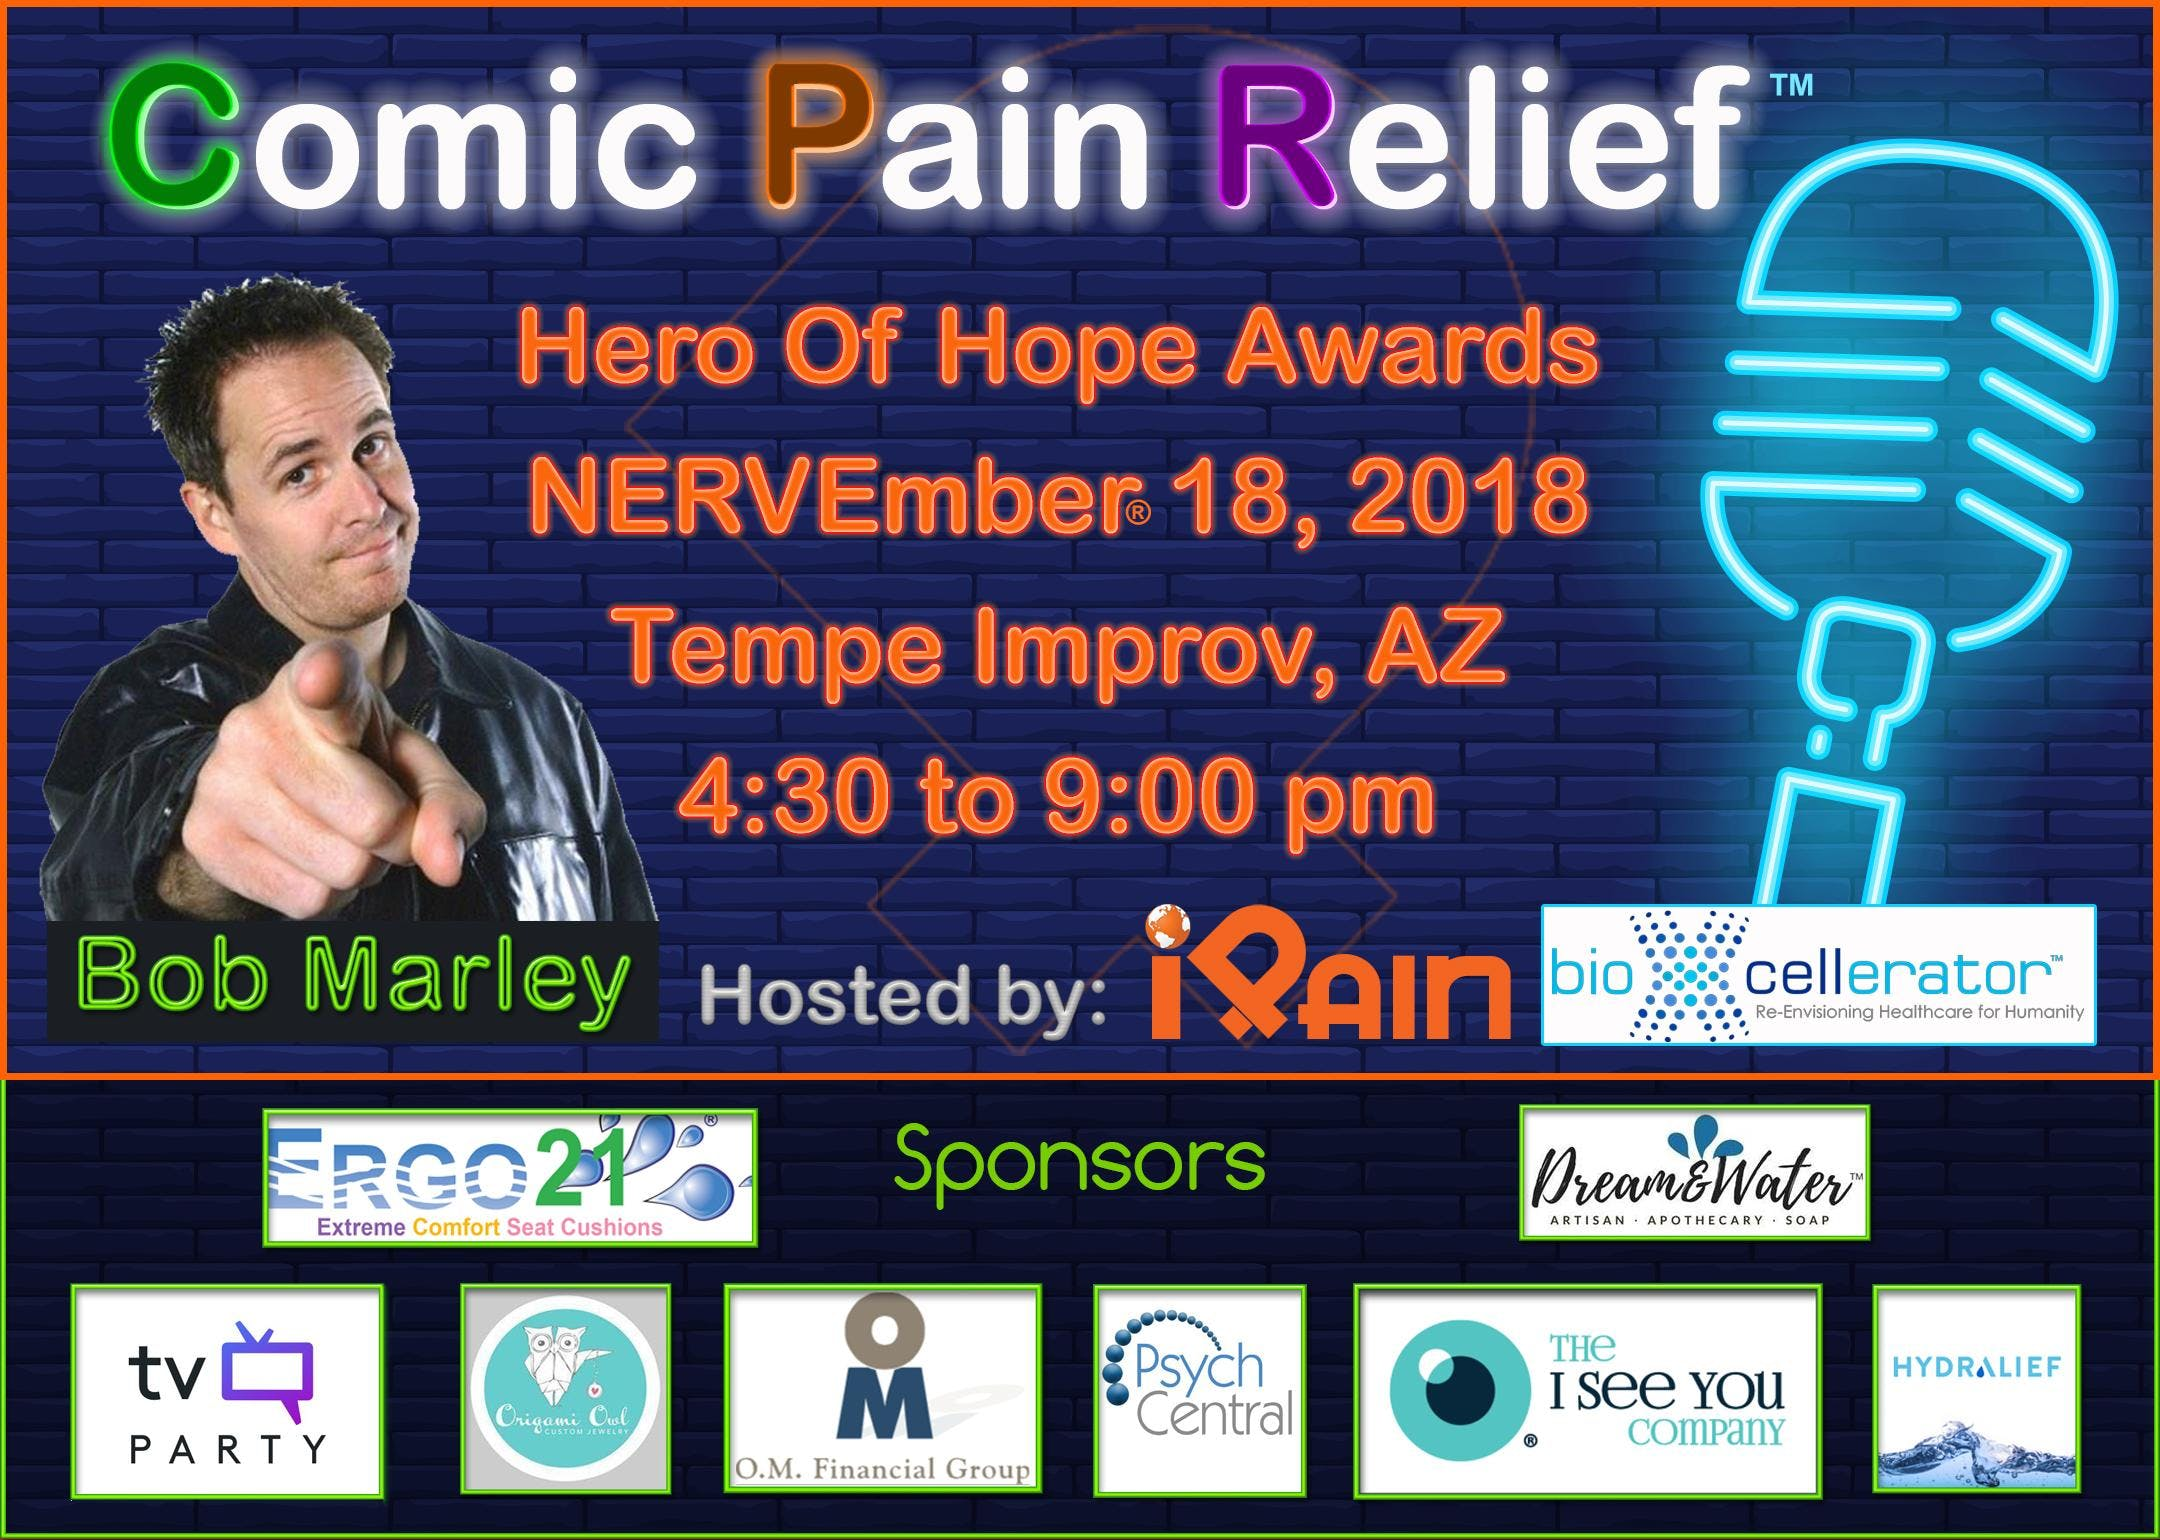 Comic Pain Relief hosted by International Pain Foundation & BioXcellerator